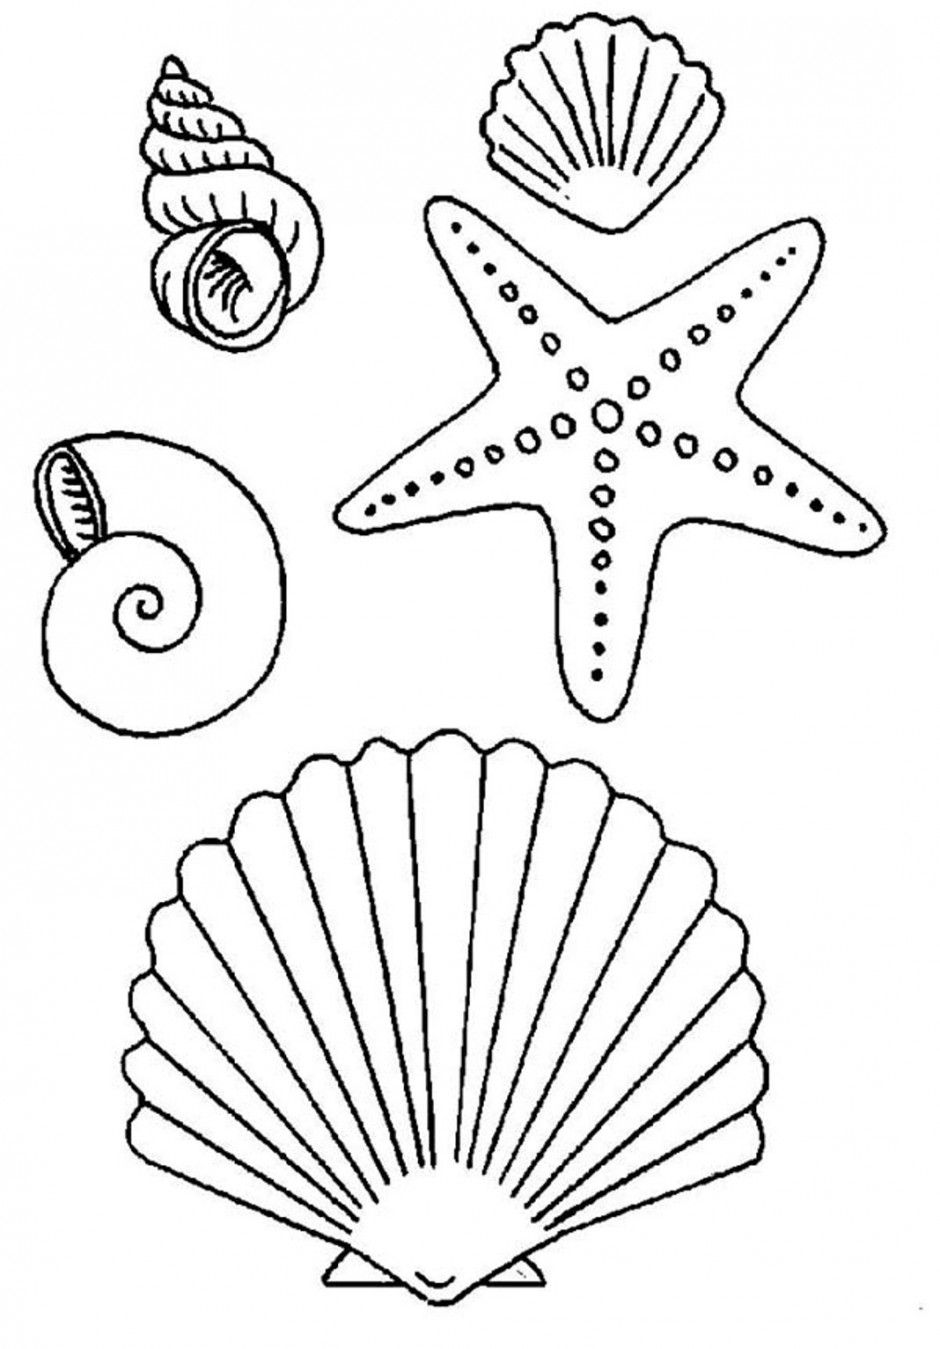 Free Printable Starfish Coloring Pages - DopePicz  268b792a7e0